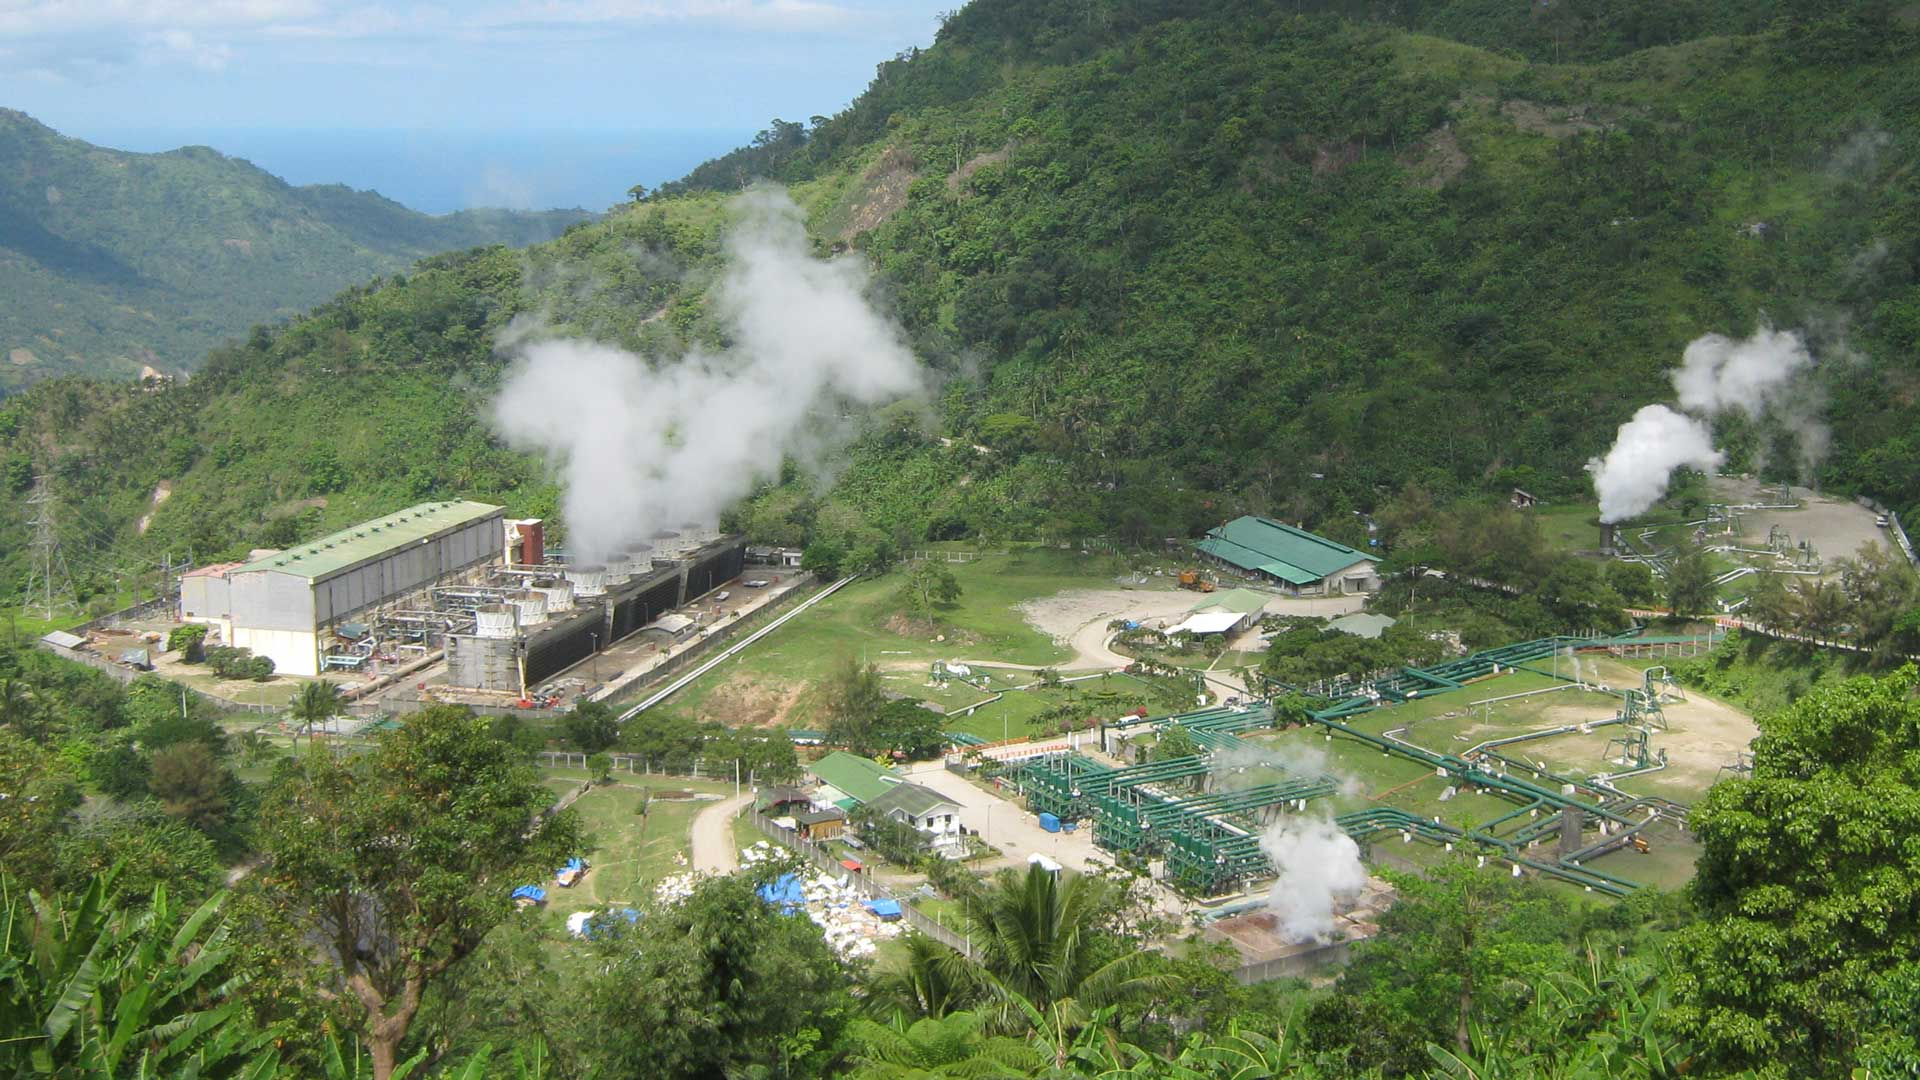 Palinpinon Geothermal power plant in the Philippines